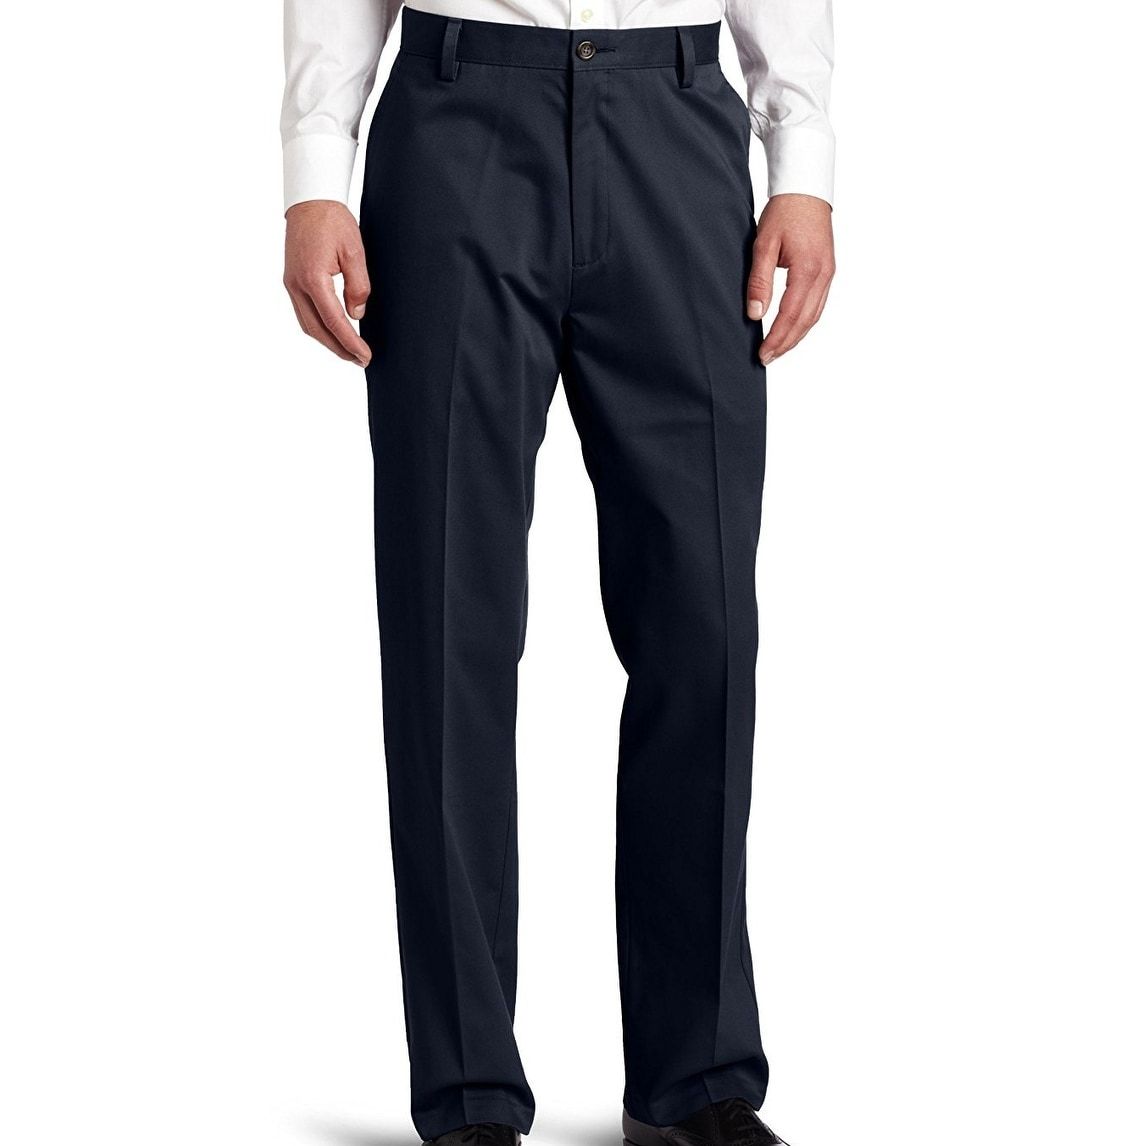 8a0e046b4f Shop Dockers Navy Blue Mens 34x34 Classic-Fit Easy Khakis Stretch Pants -  On Sale - Free Shipping On Orders Over  45 - Overstock - 27186906